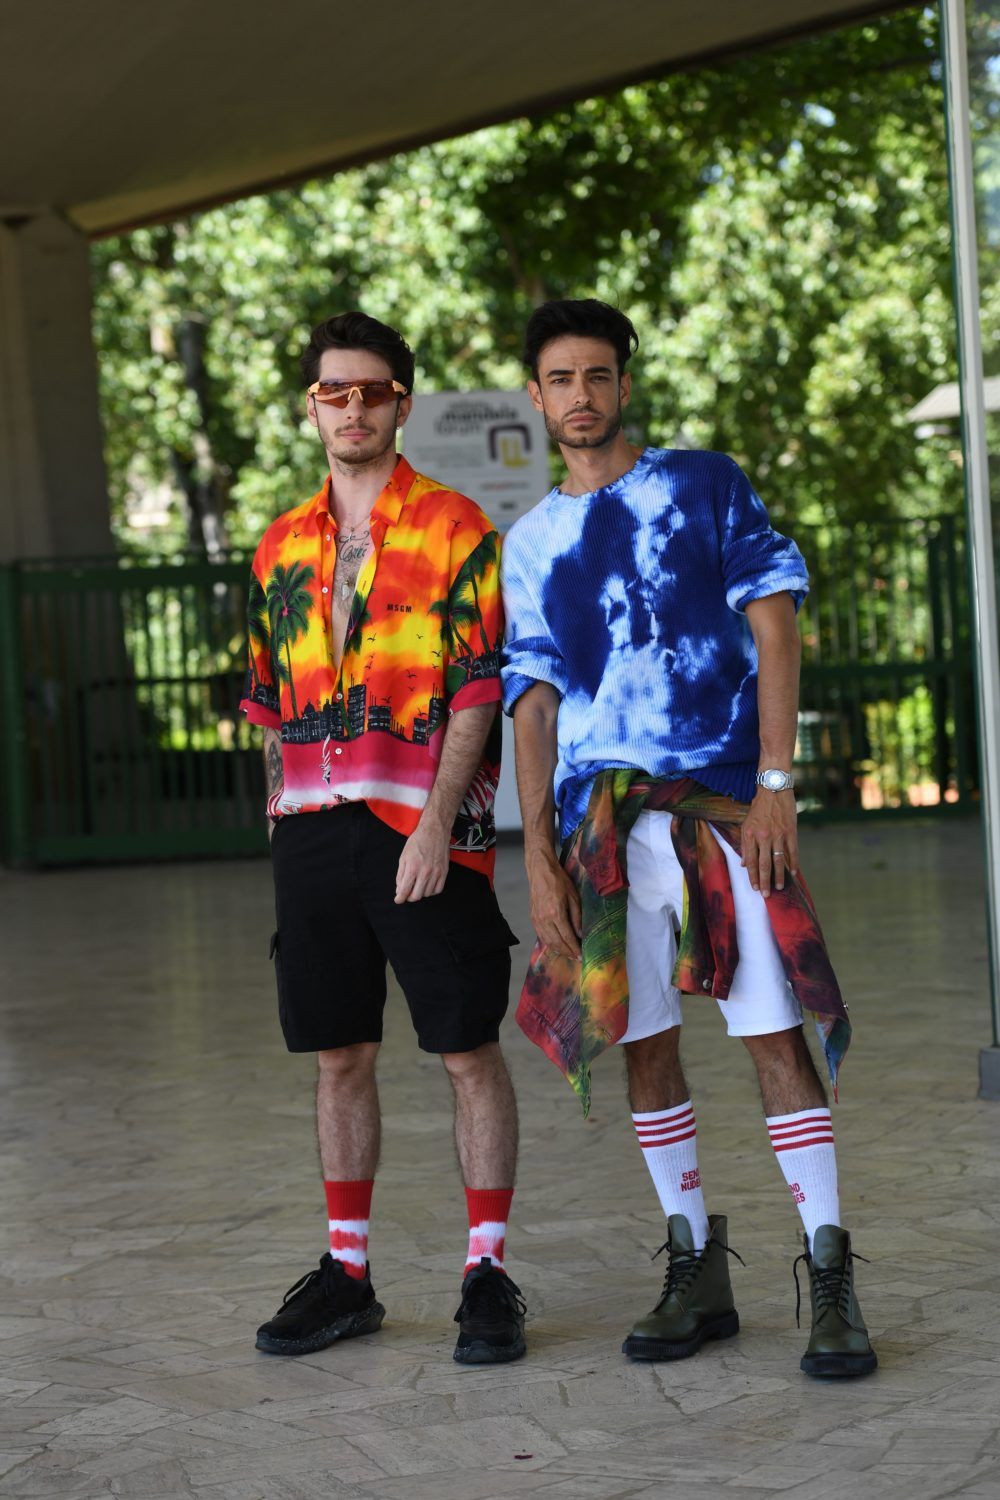 Brights and tie-dye up top pop against neutral footwear set off by candy-cane-colored socks.